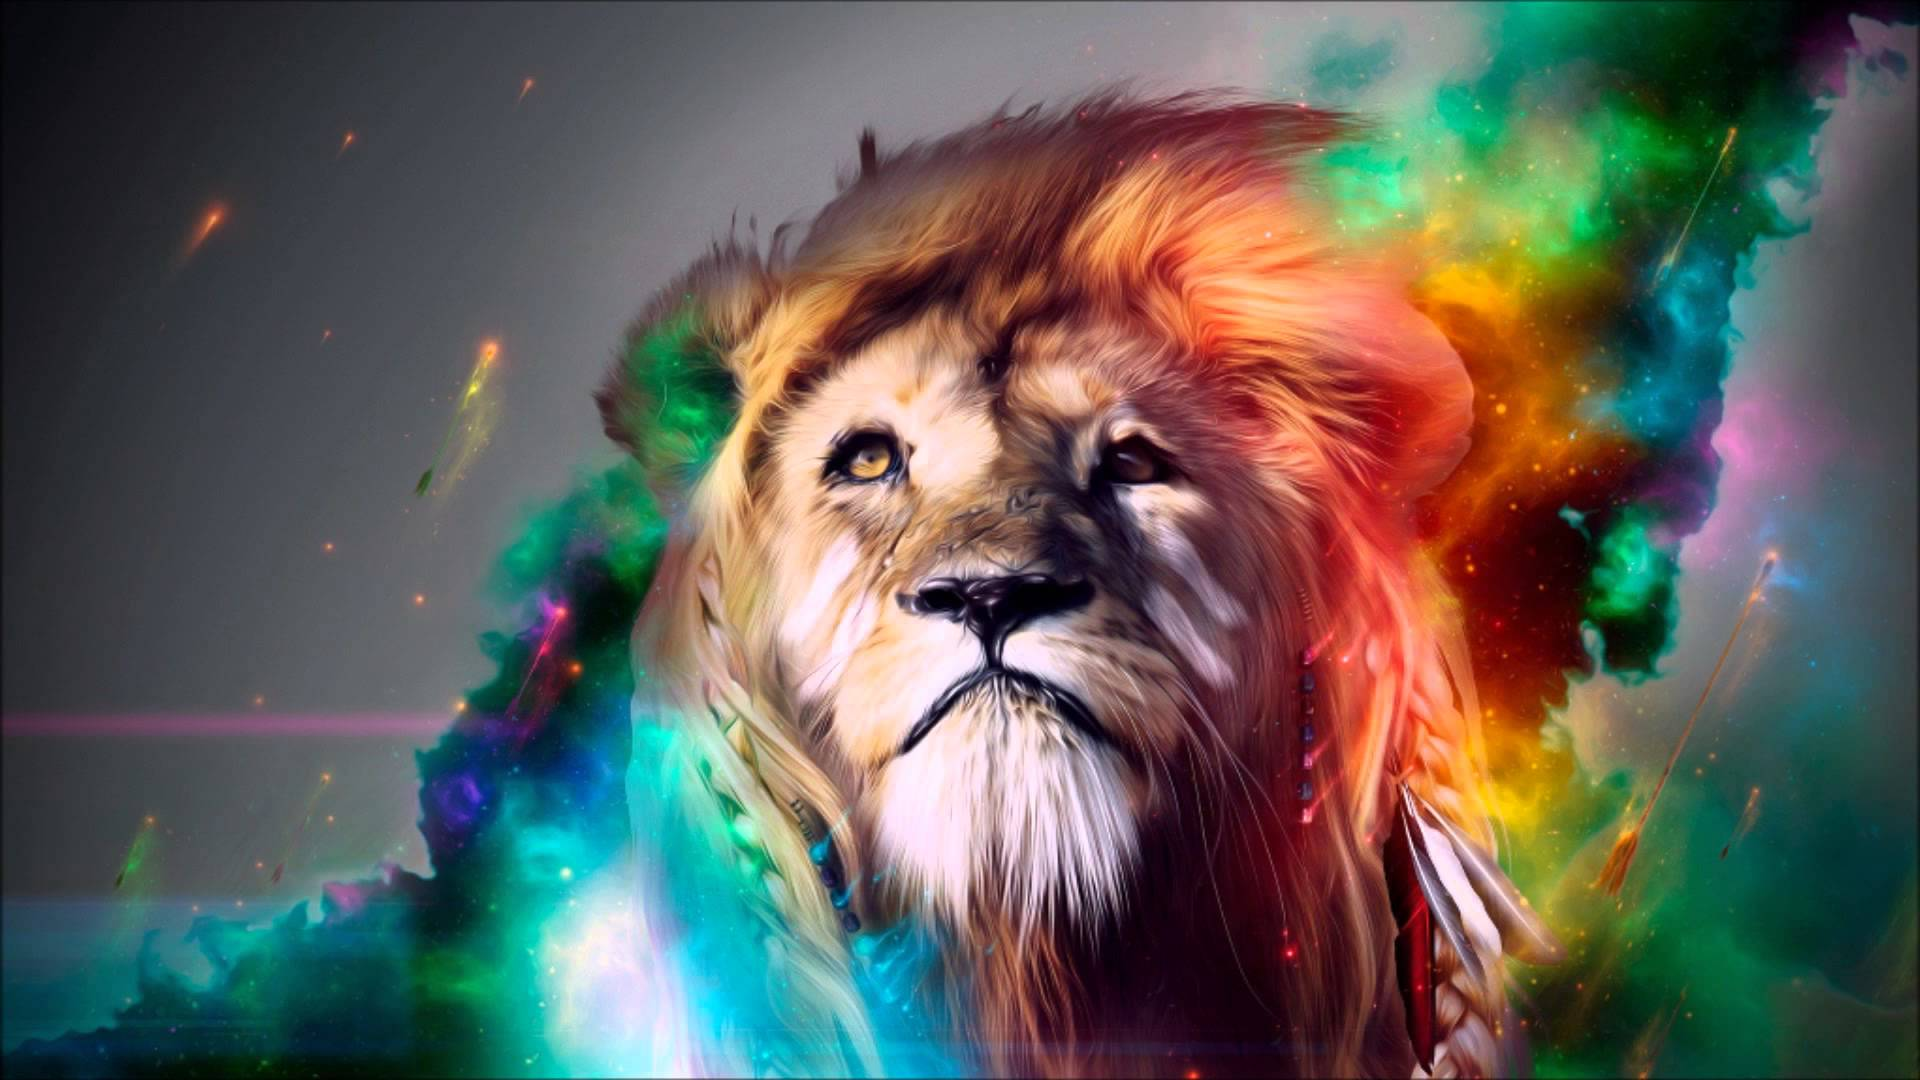 Cool Pictures Lion Dream